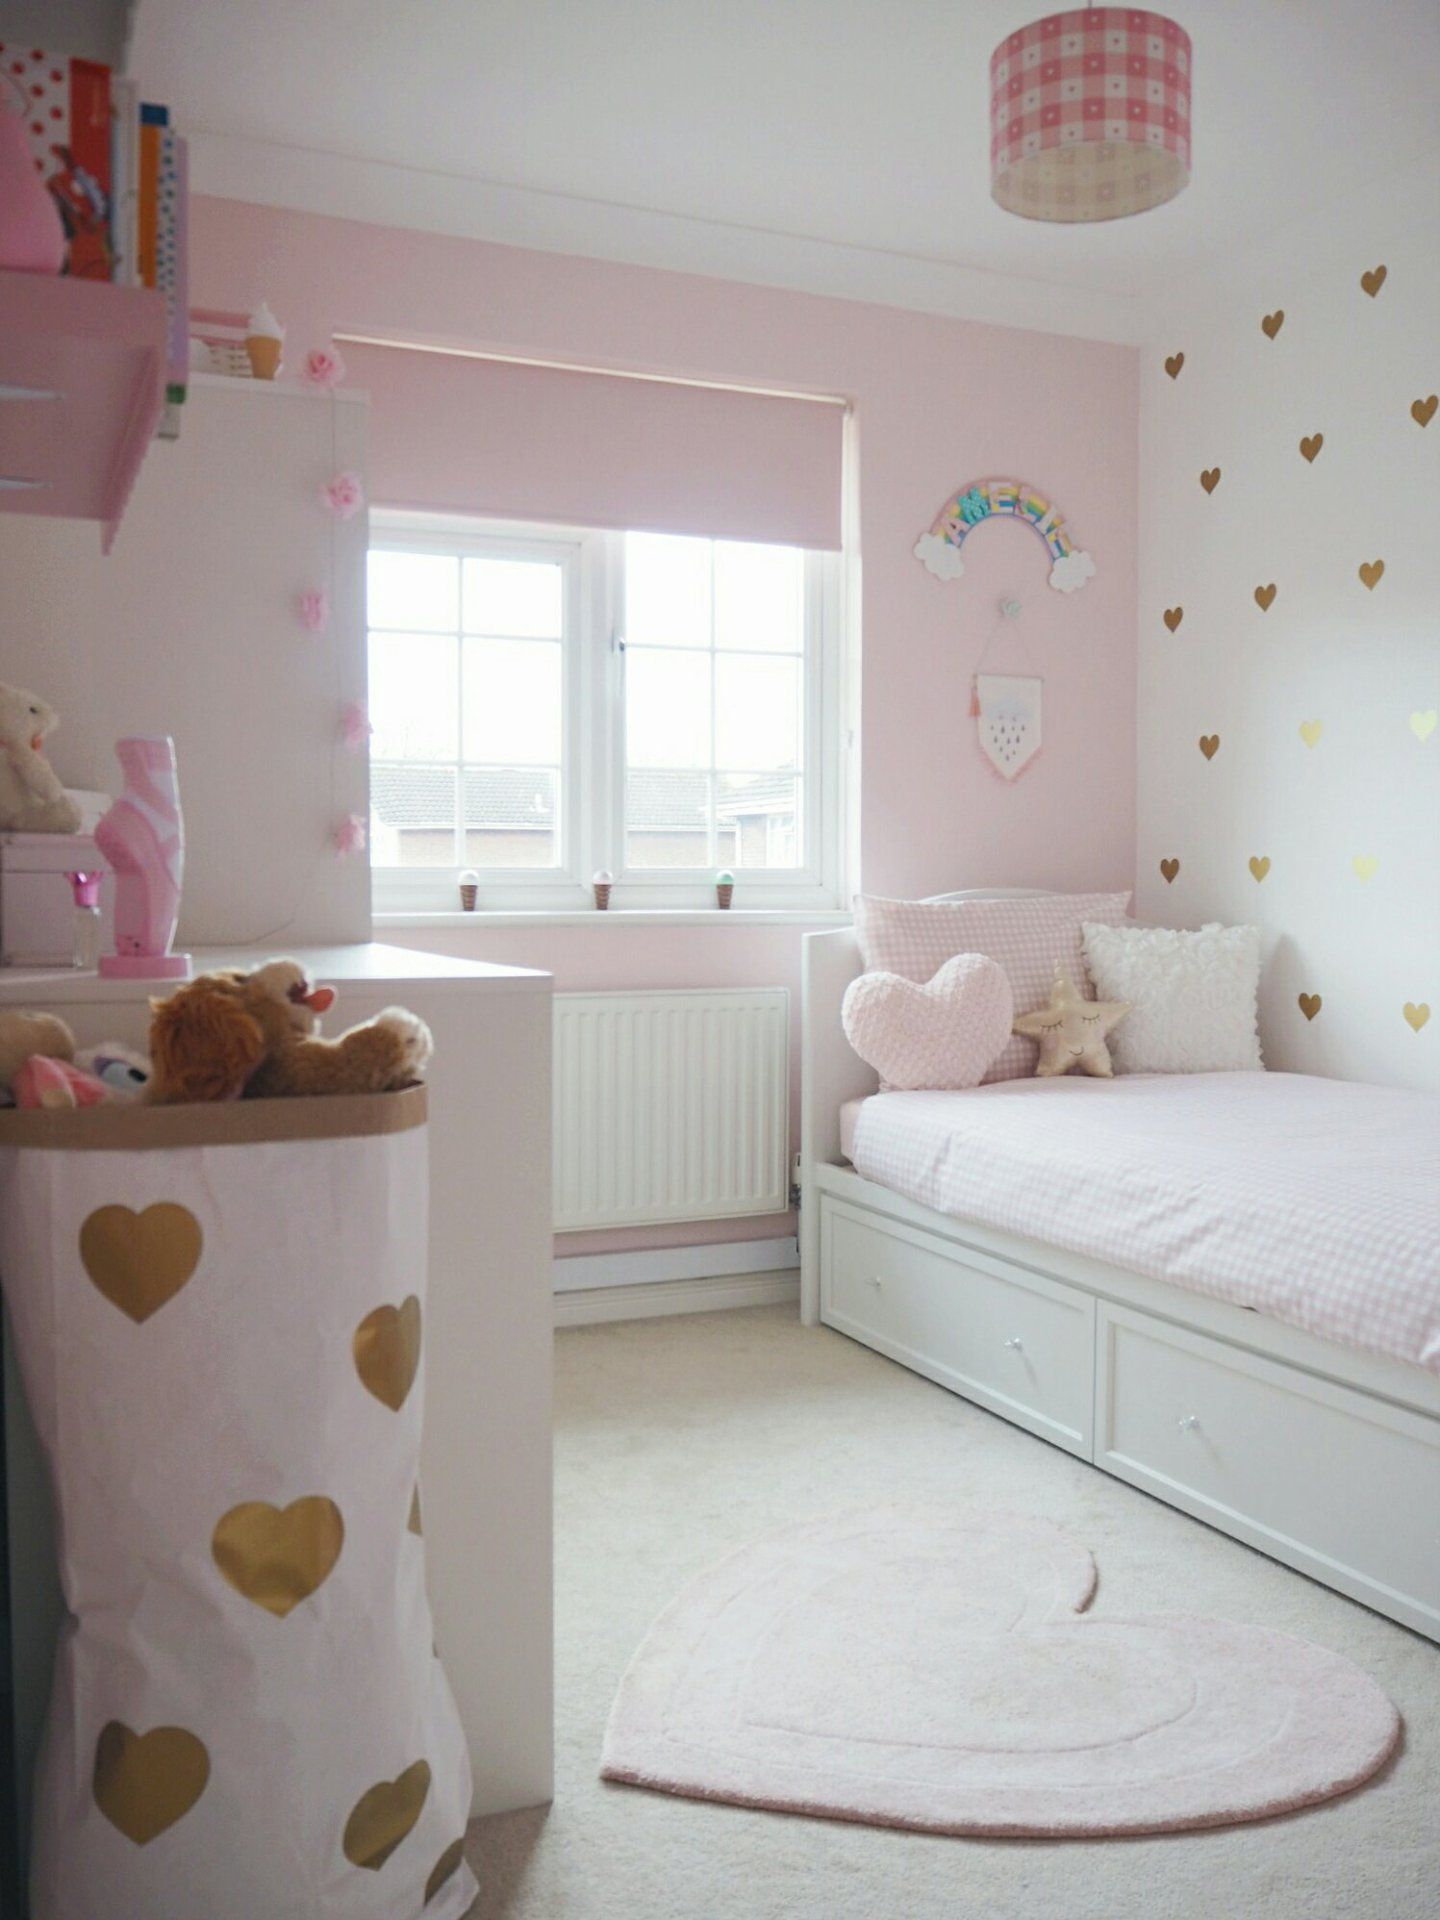 Amelie's Soft Pink and Gold Toddler Bedroom images